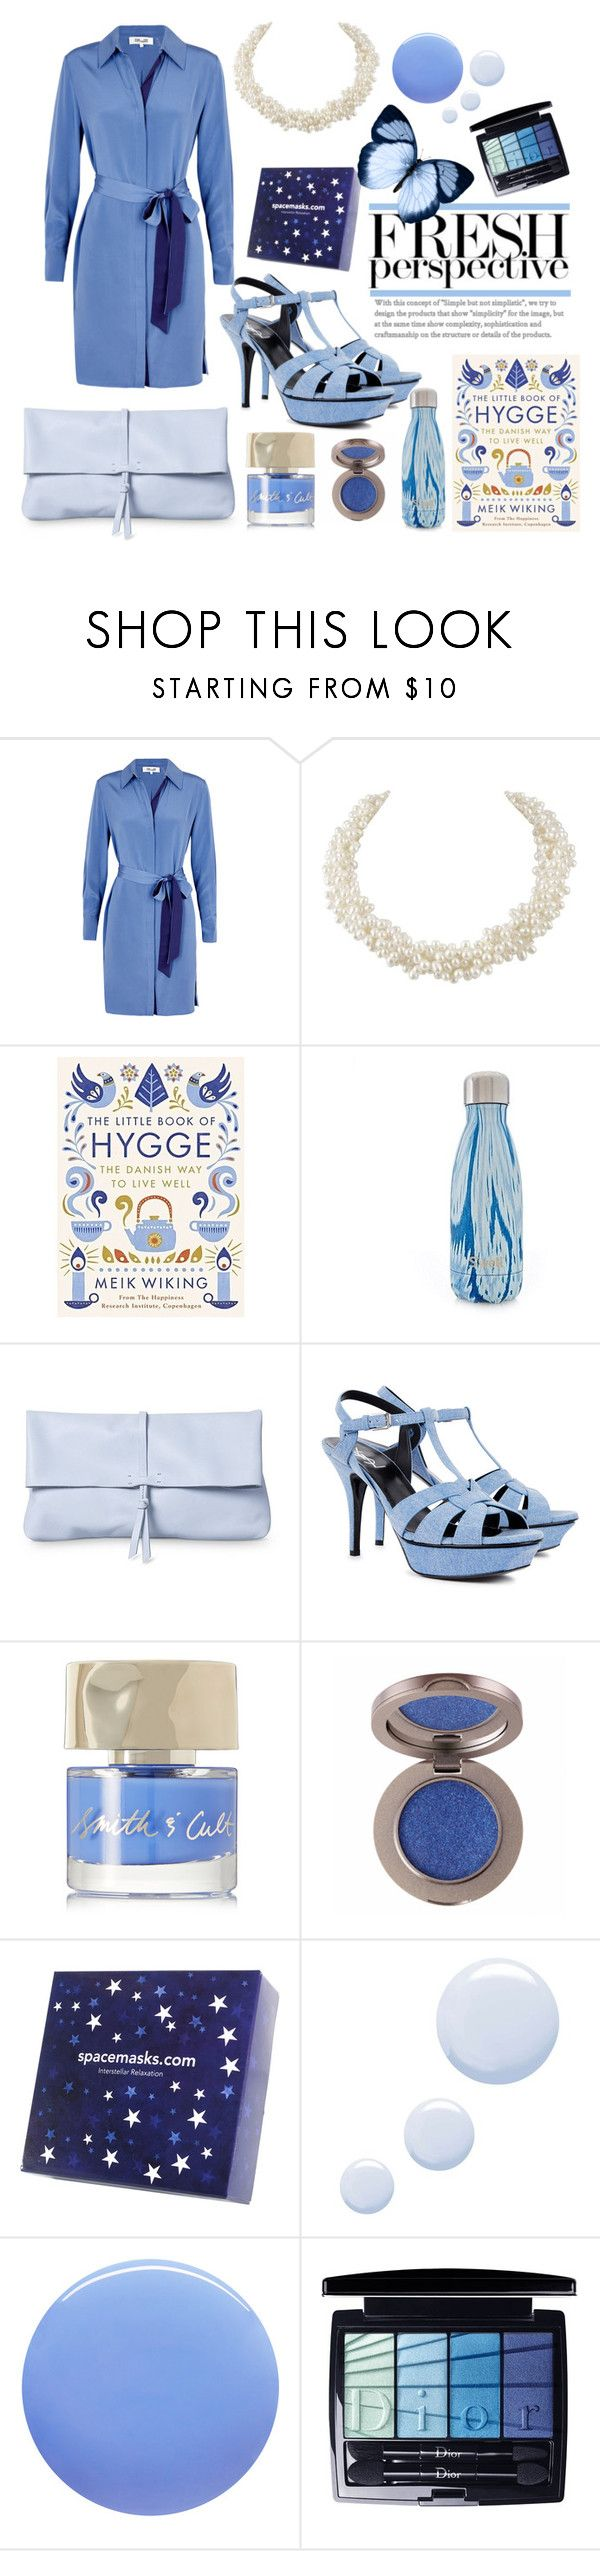 """""""6th September 2017"""" by eternal-collection ❤ liked on Polyvore featuring Diane Von Furstenberg, Yves Saint Laurent, Smith & Cult, Topshop and Christian Dior"""